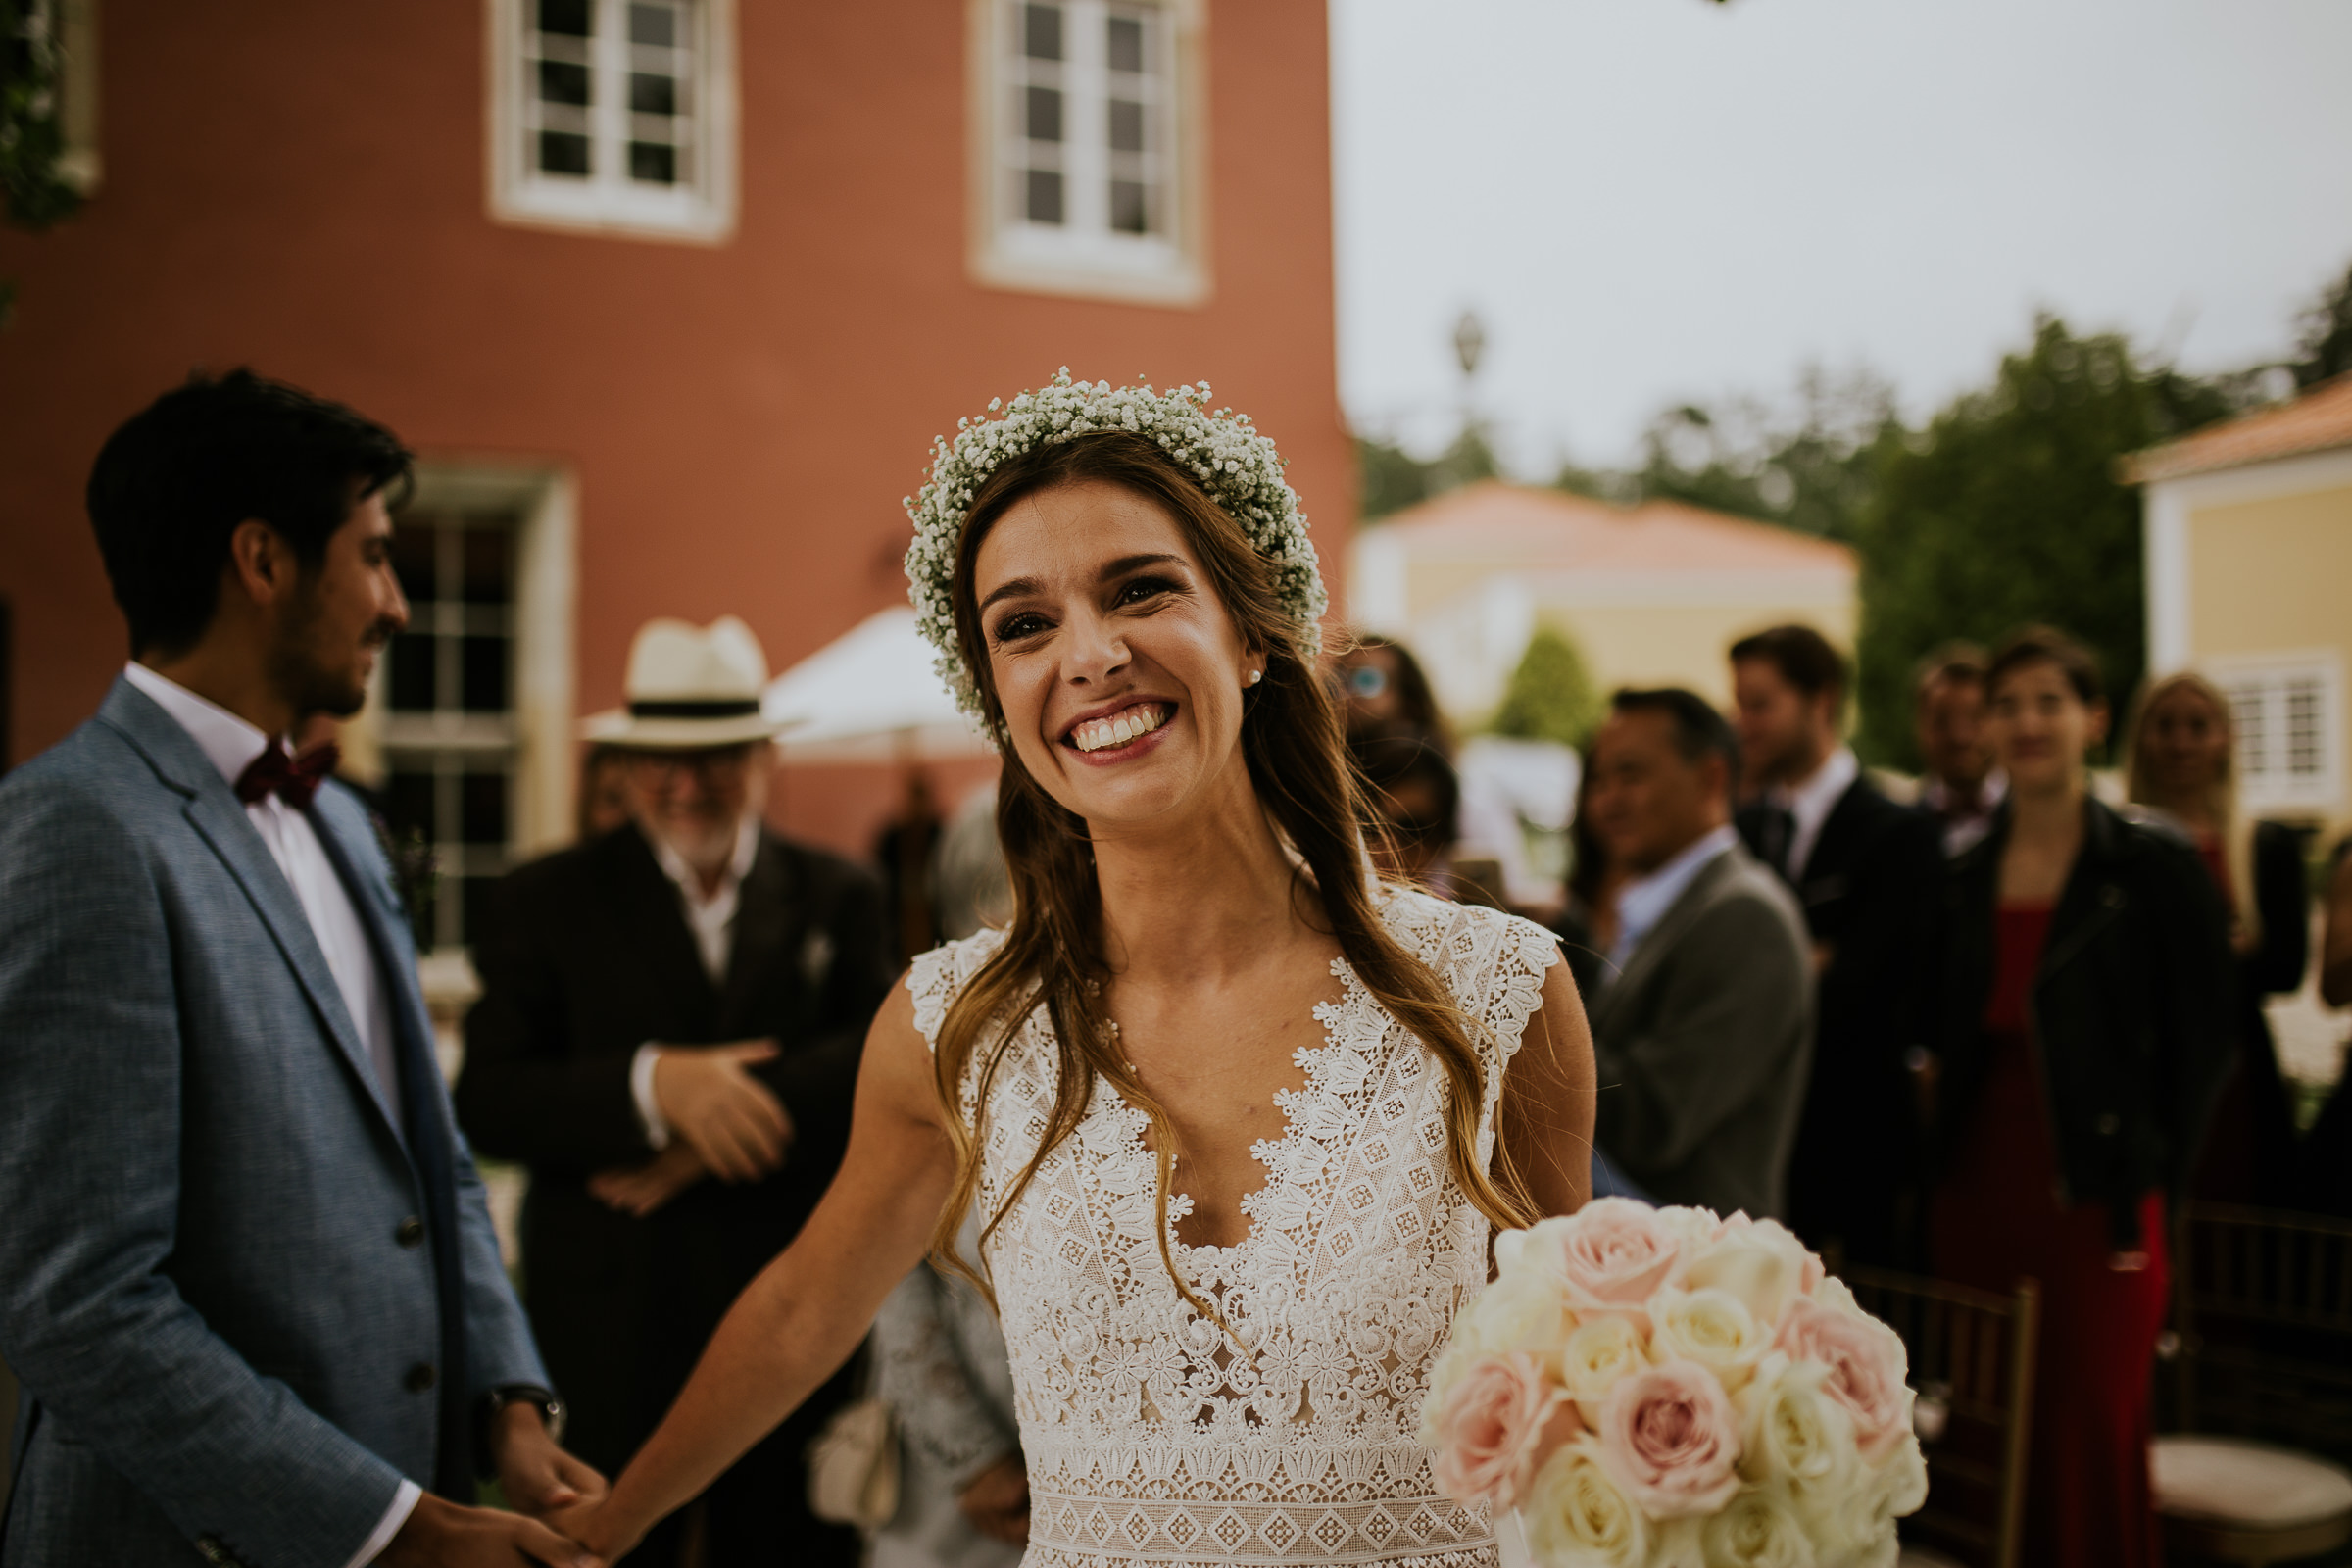 Bride smiling and taking his groom by the hand